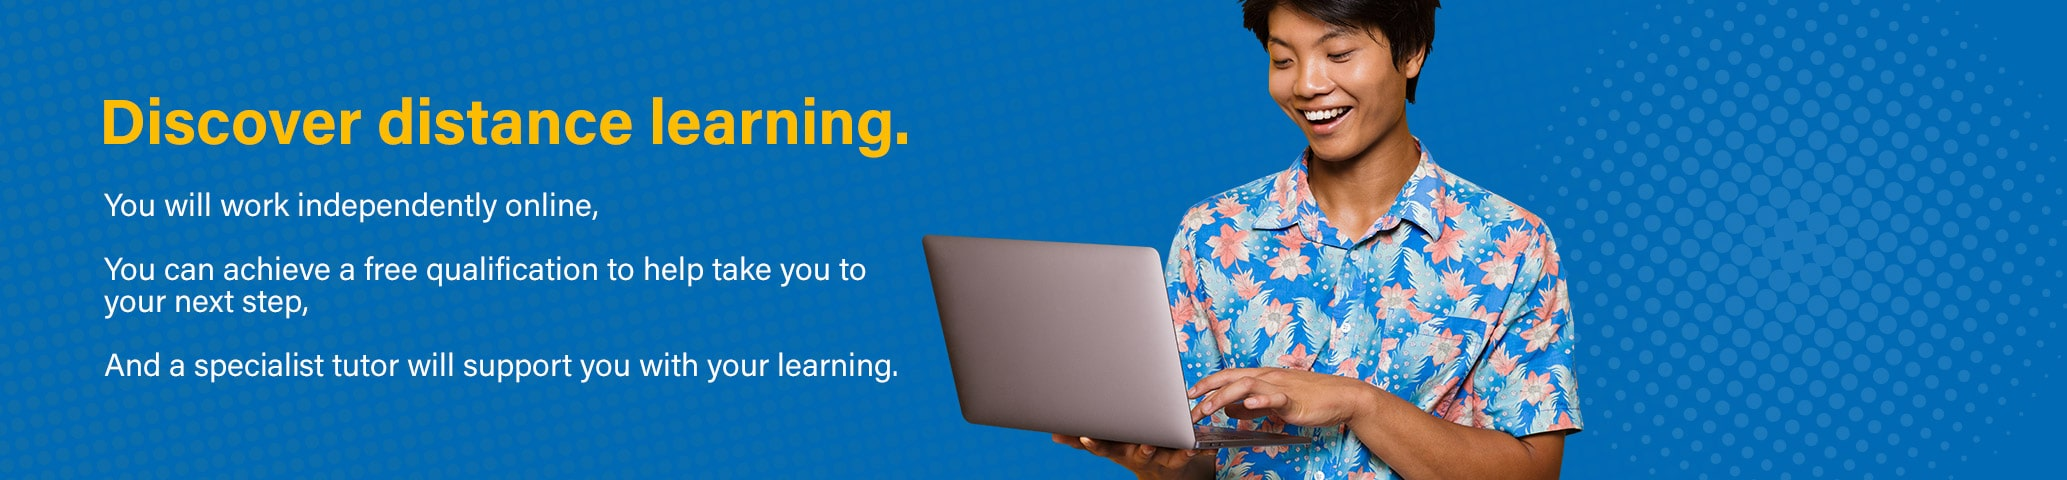 Discover Distance Learning July 2021